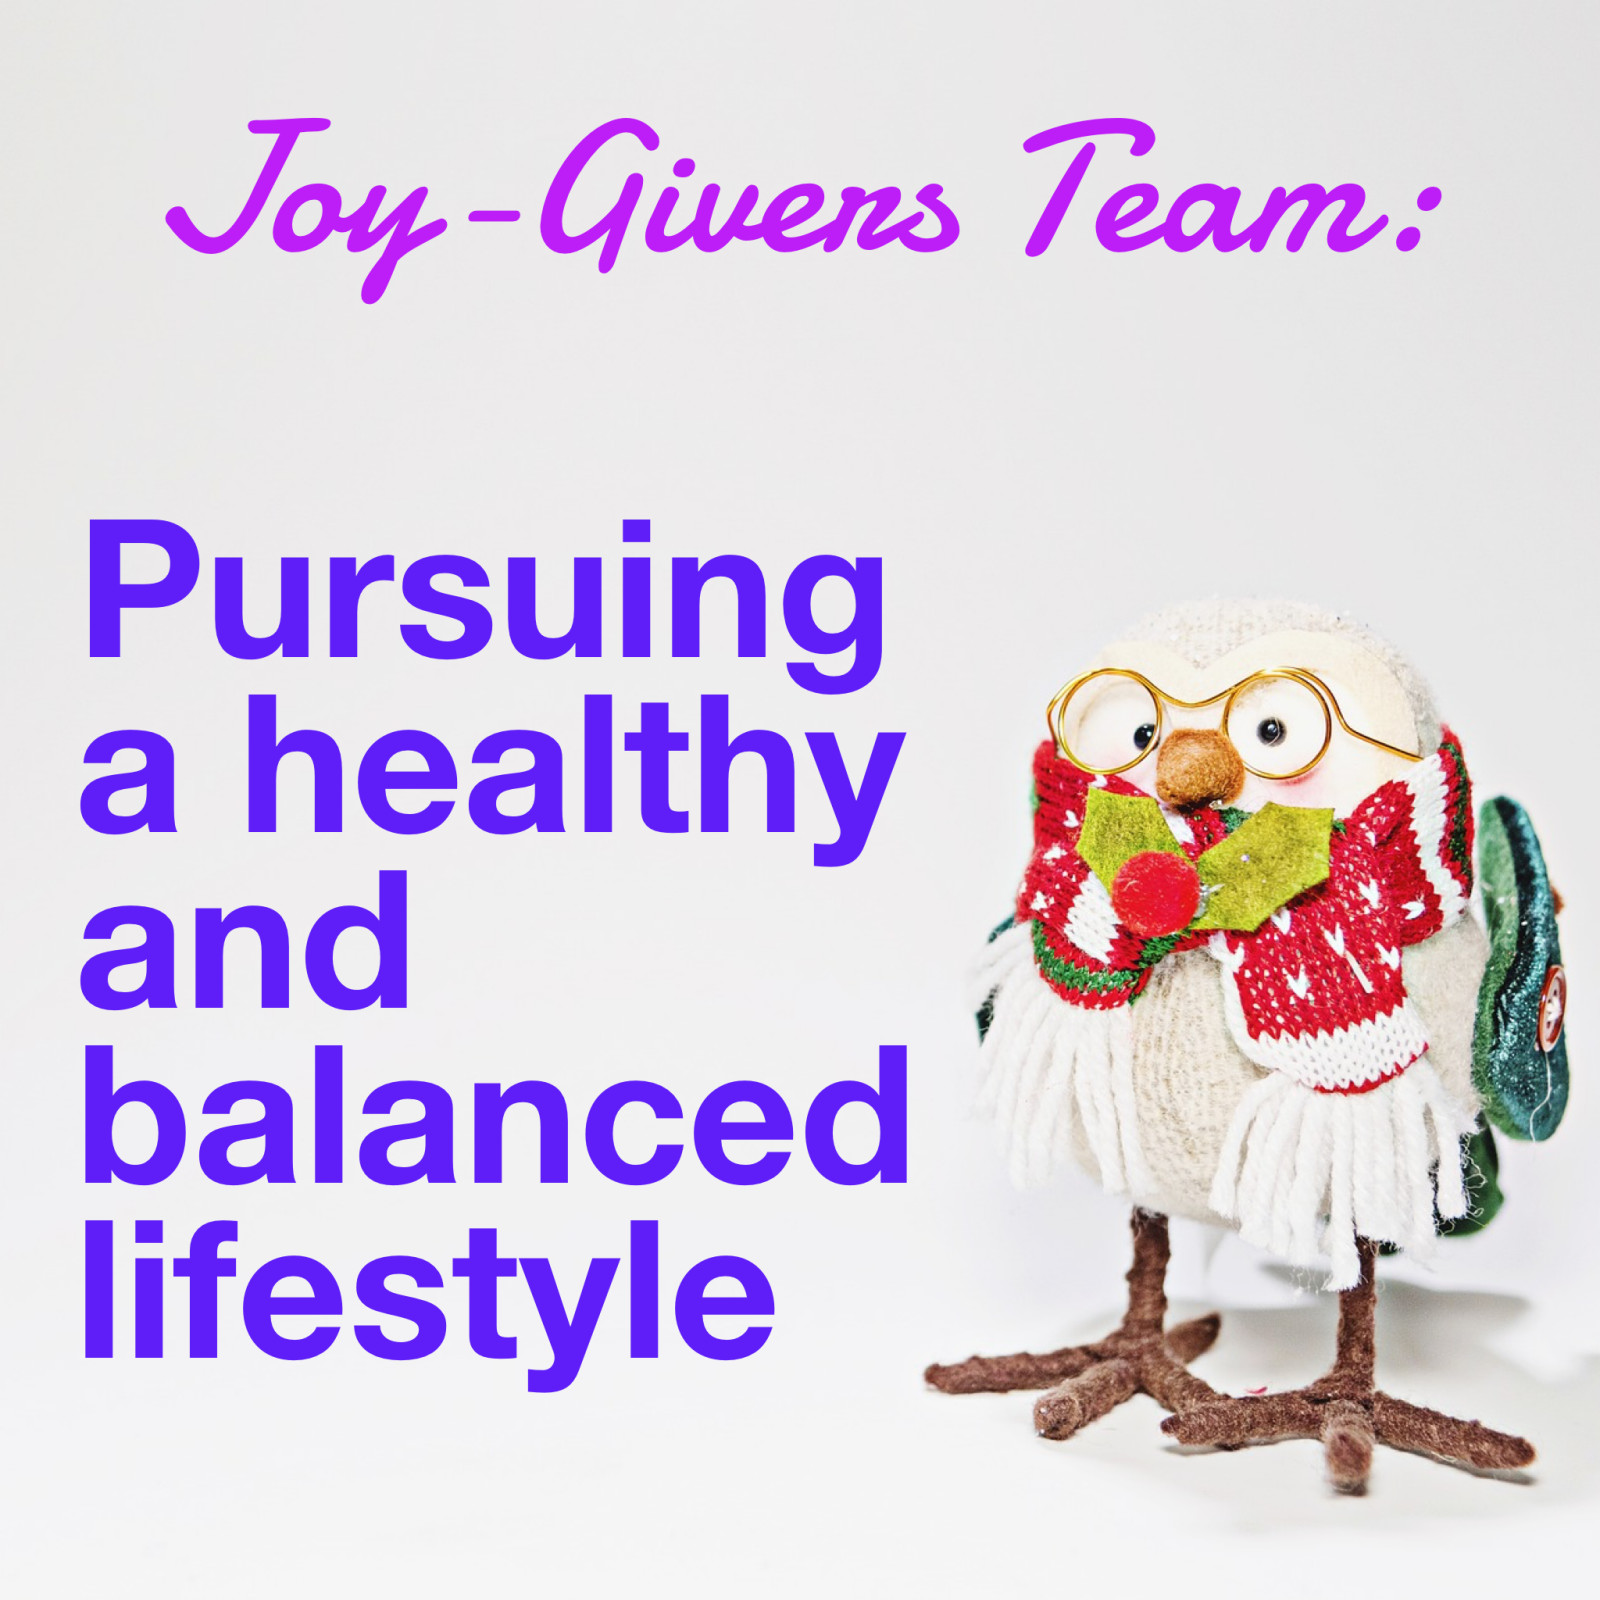 Joy-Givers Team: Pursuing a Healthy Lifestyle